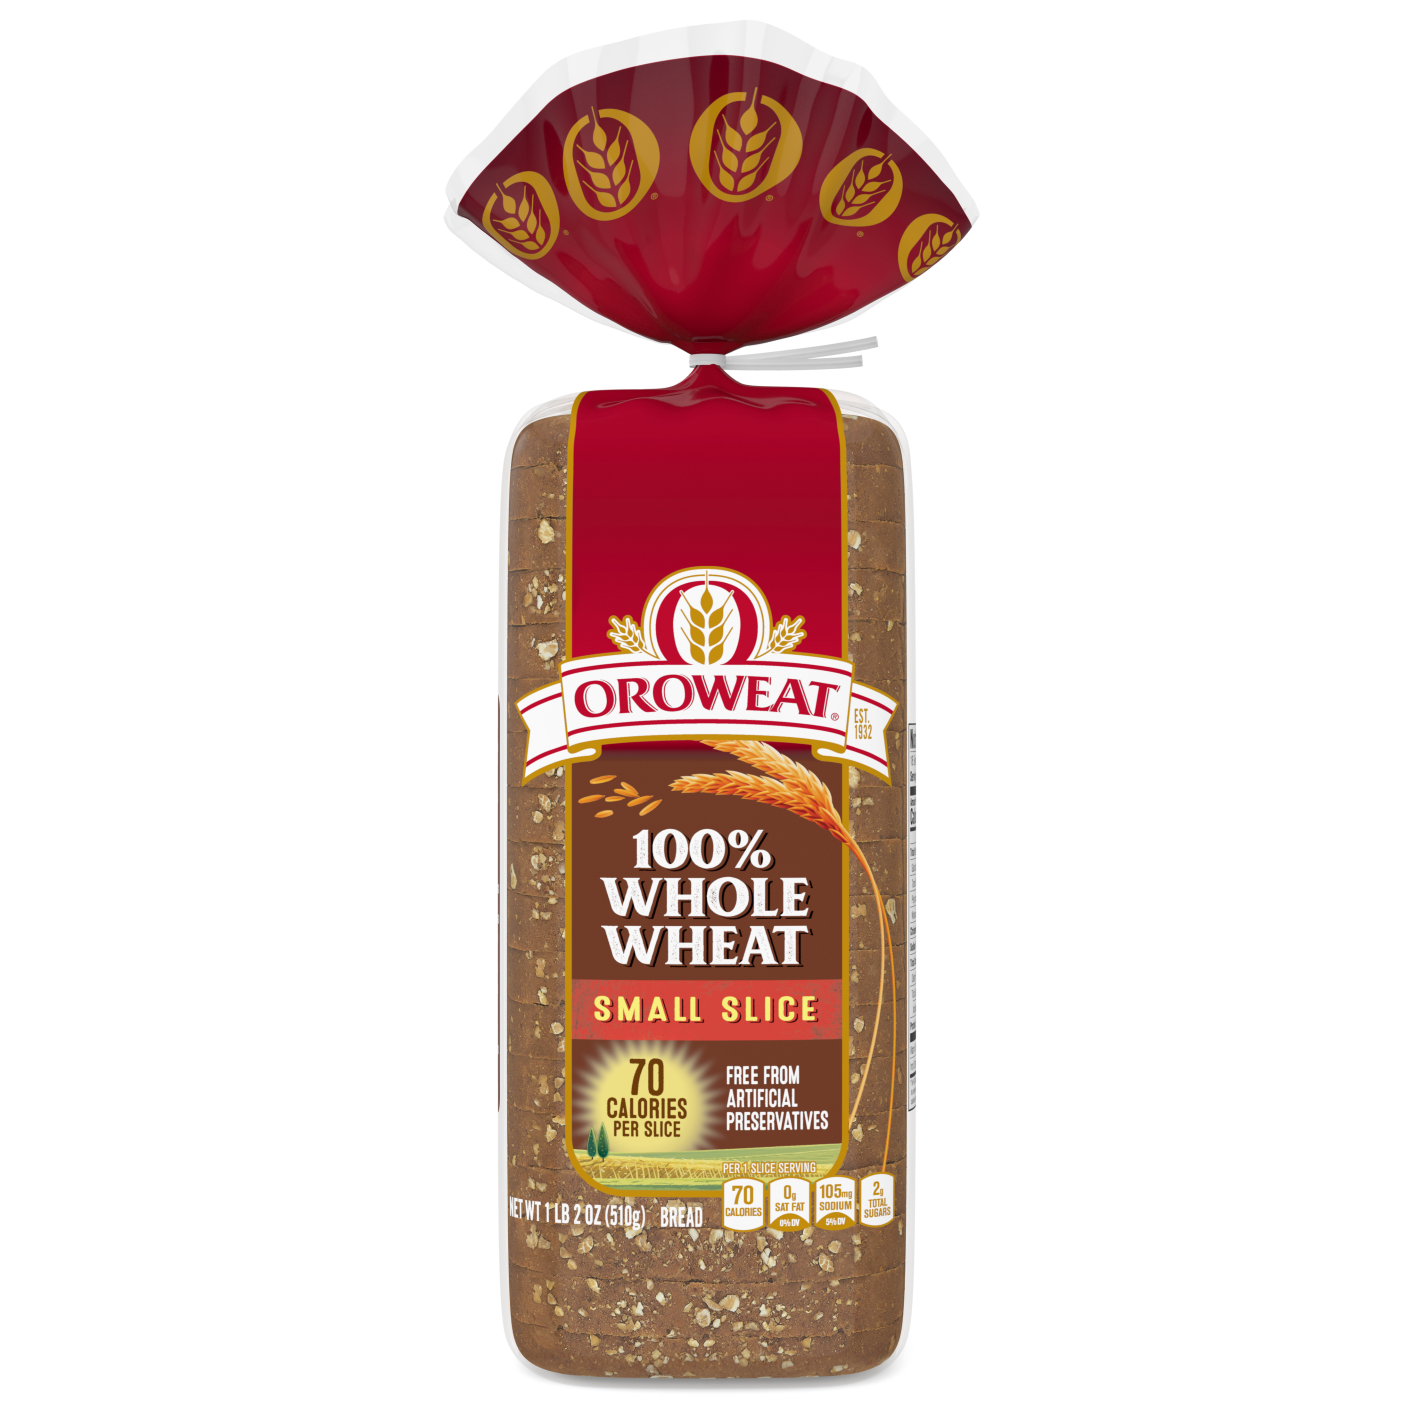 Oroweat Small Slice 100% Whole Wheat 18oz Packaging